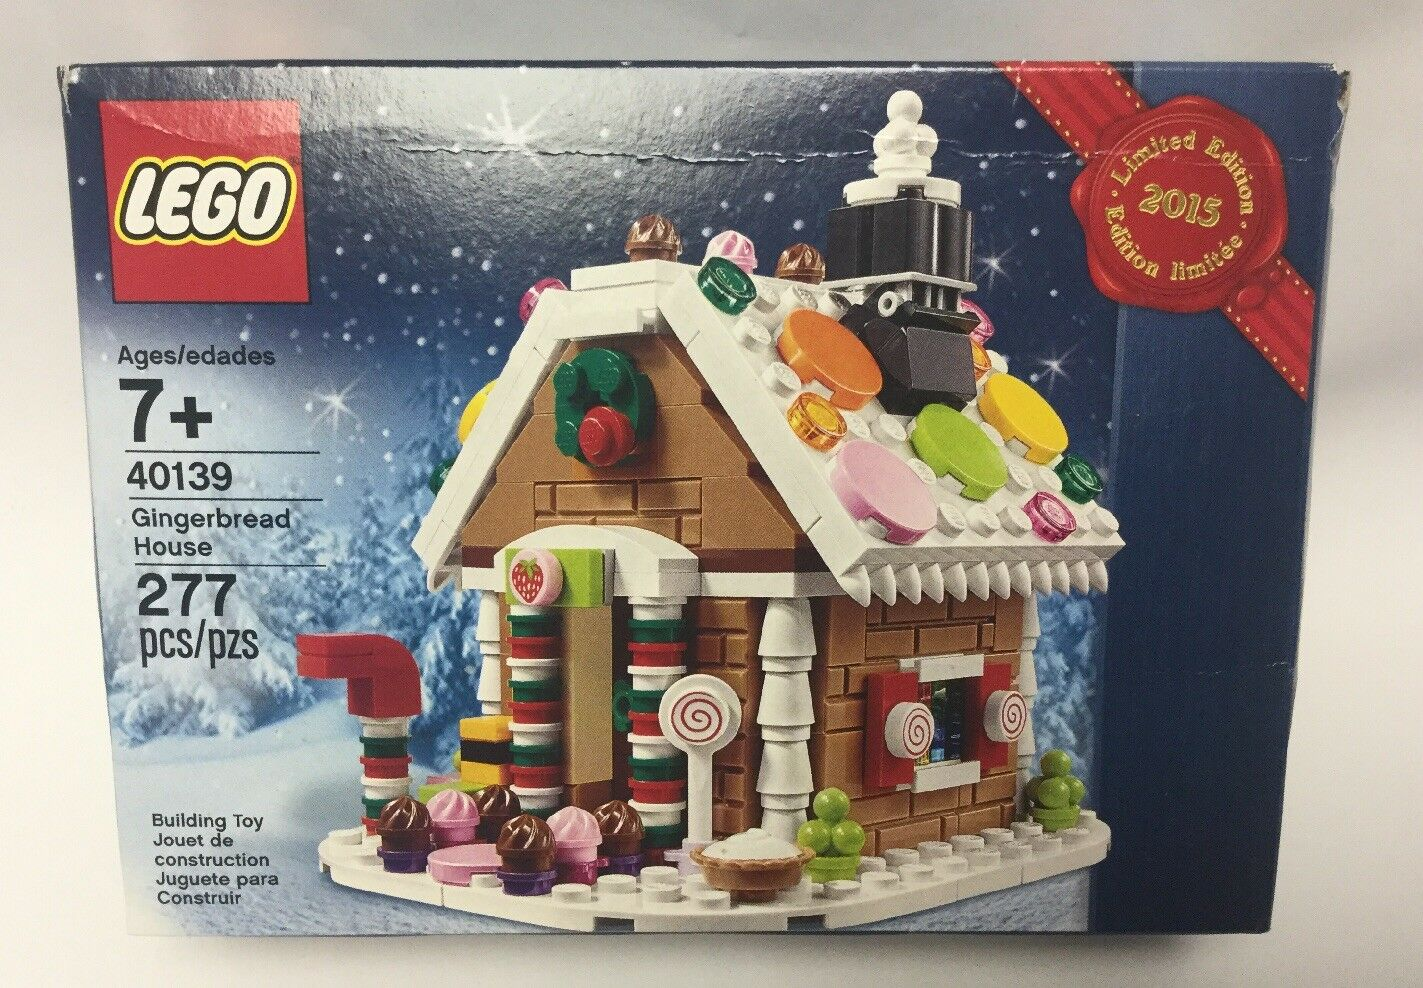 New LEGO 40139 Gingerbread House 2015 Limited Edition